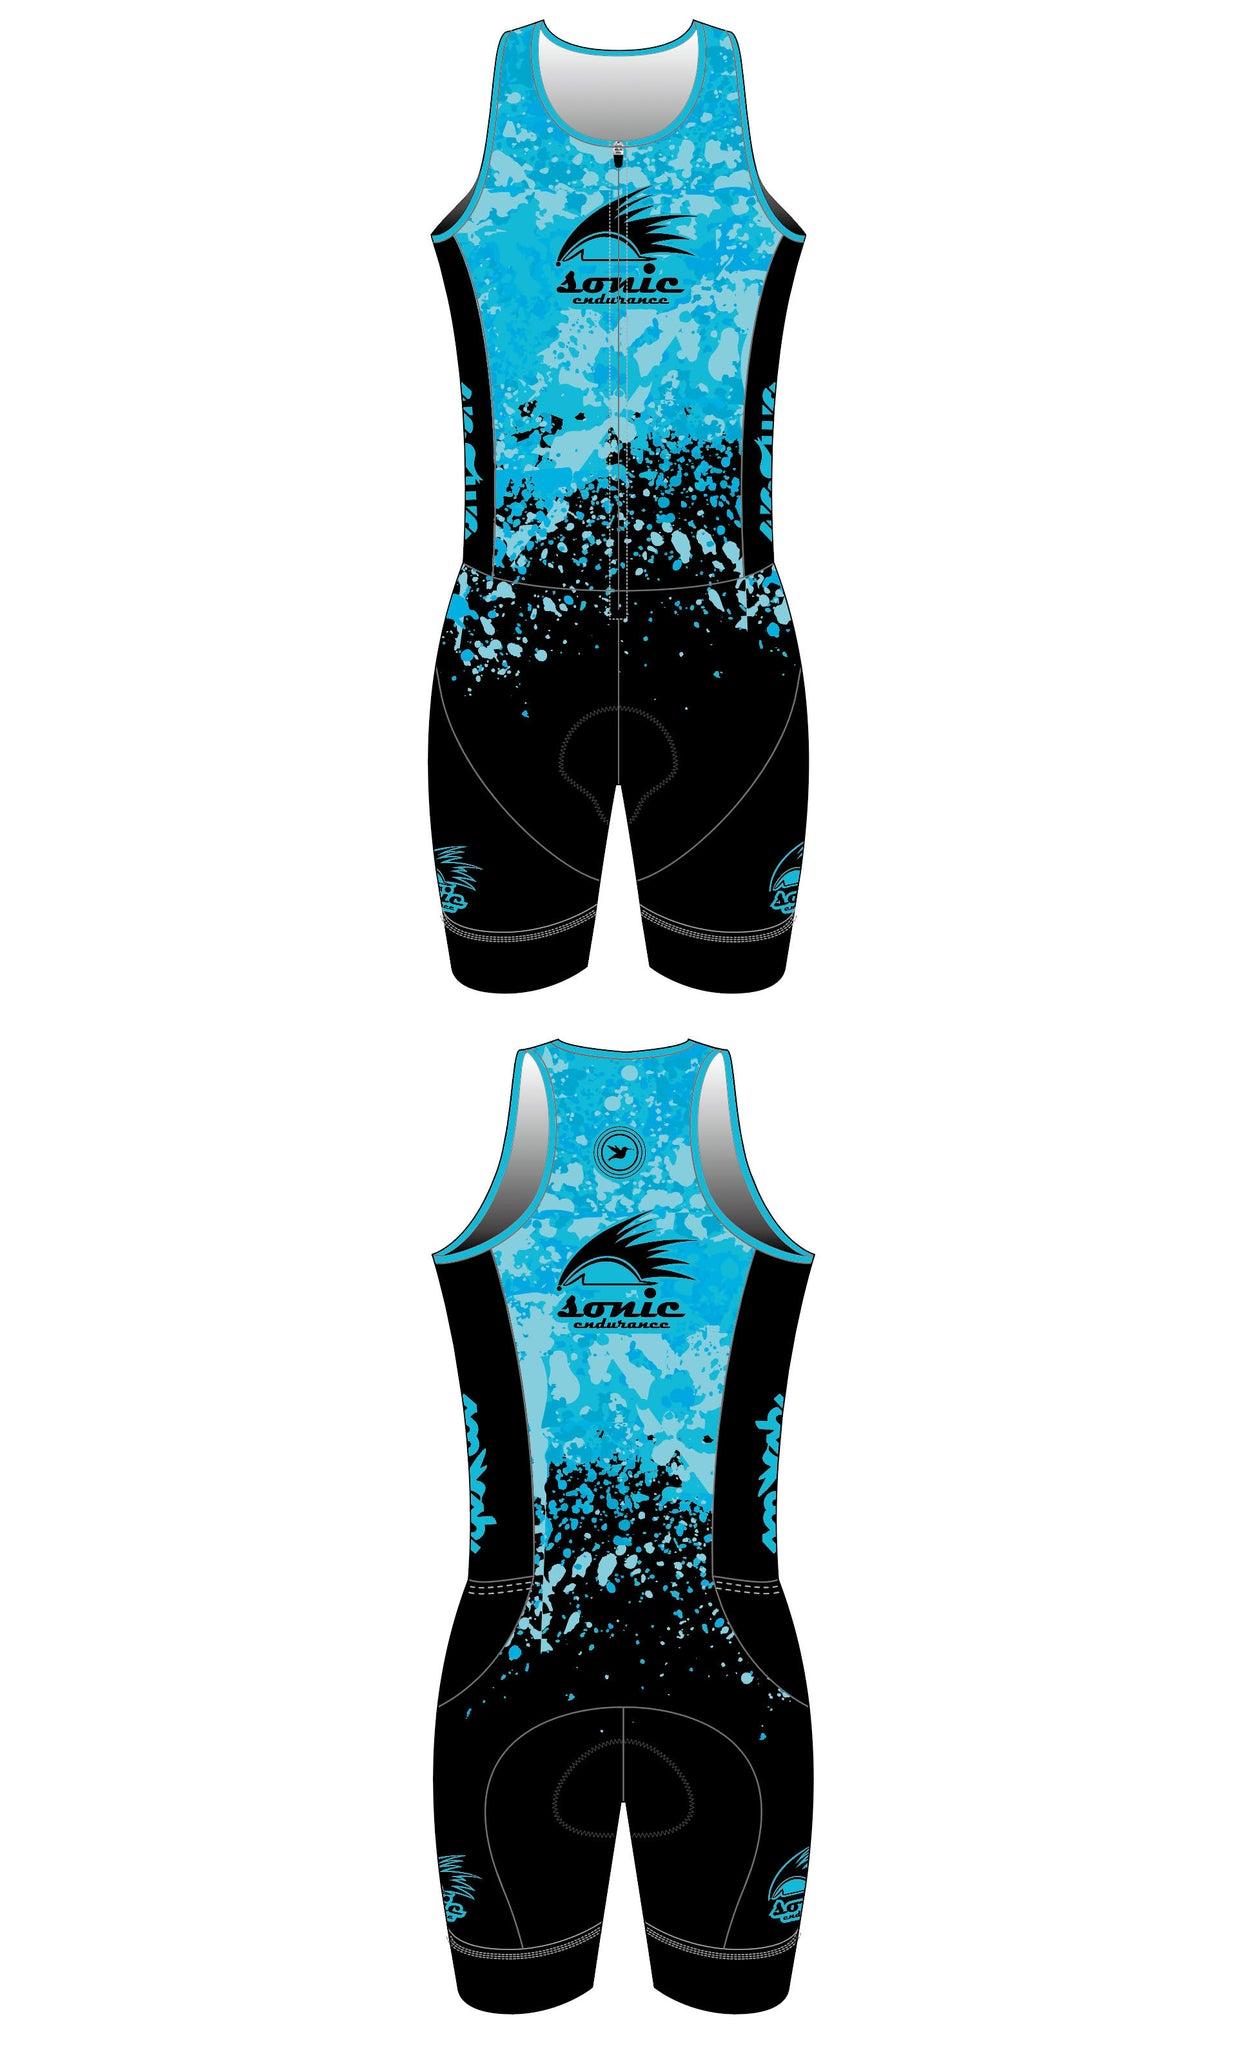 Sonic Endurance Women's Sleeveless One-Piece Trisuit Pre-Order